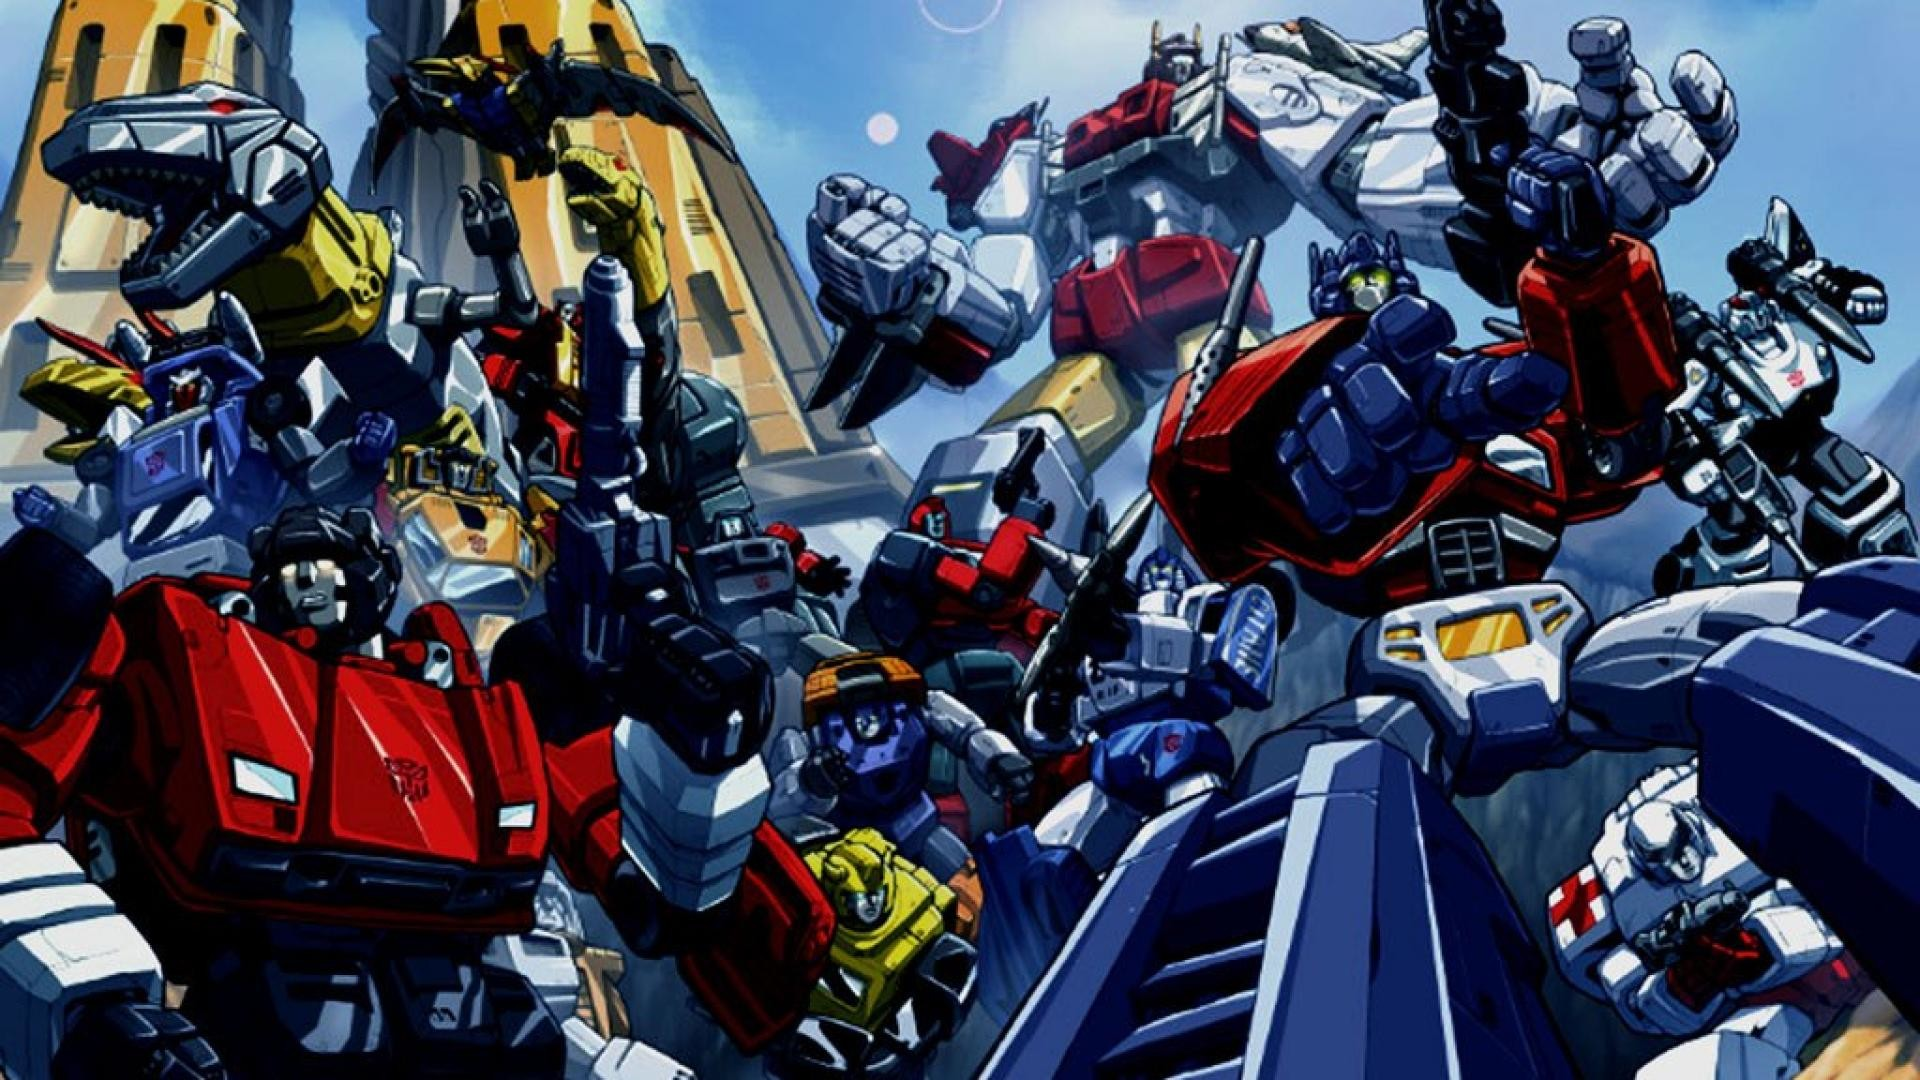 Res: 1920x1080, Transformer Cartoon Wallpapers Group (77+)